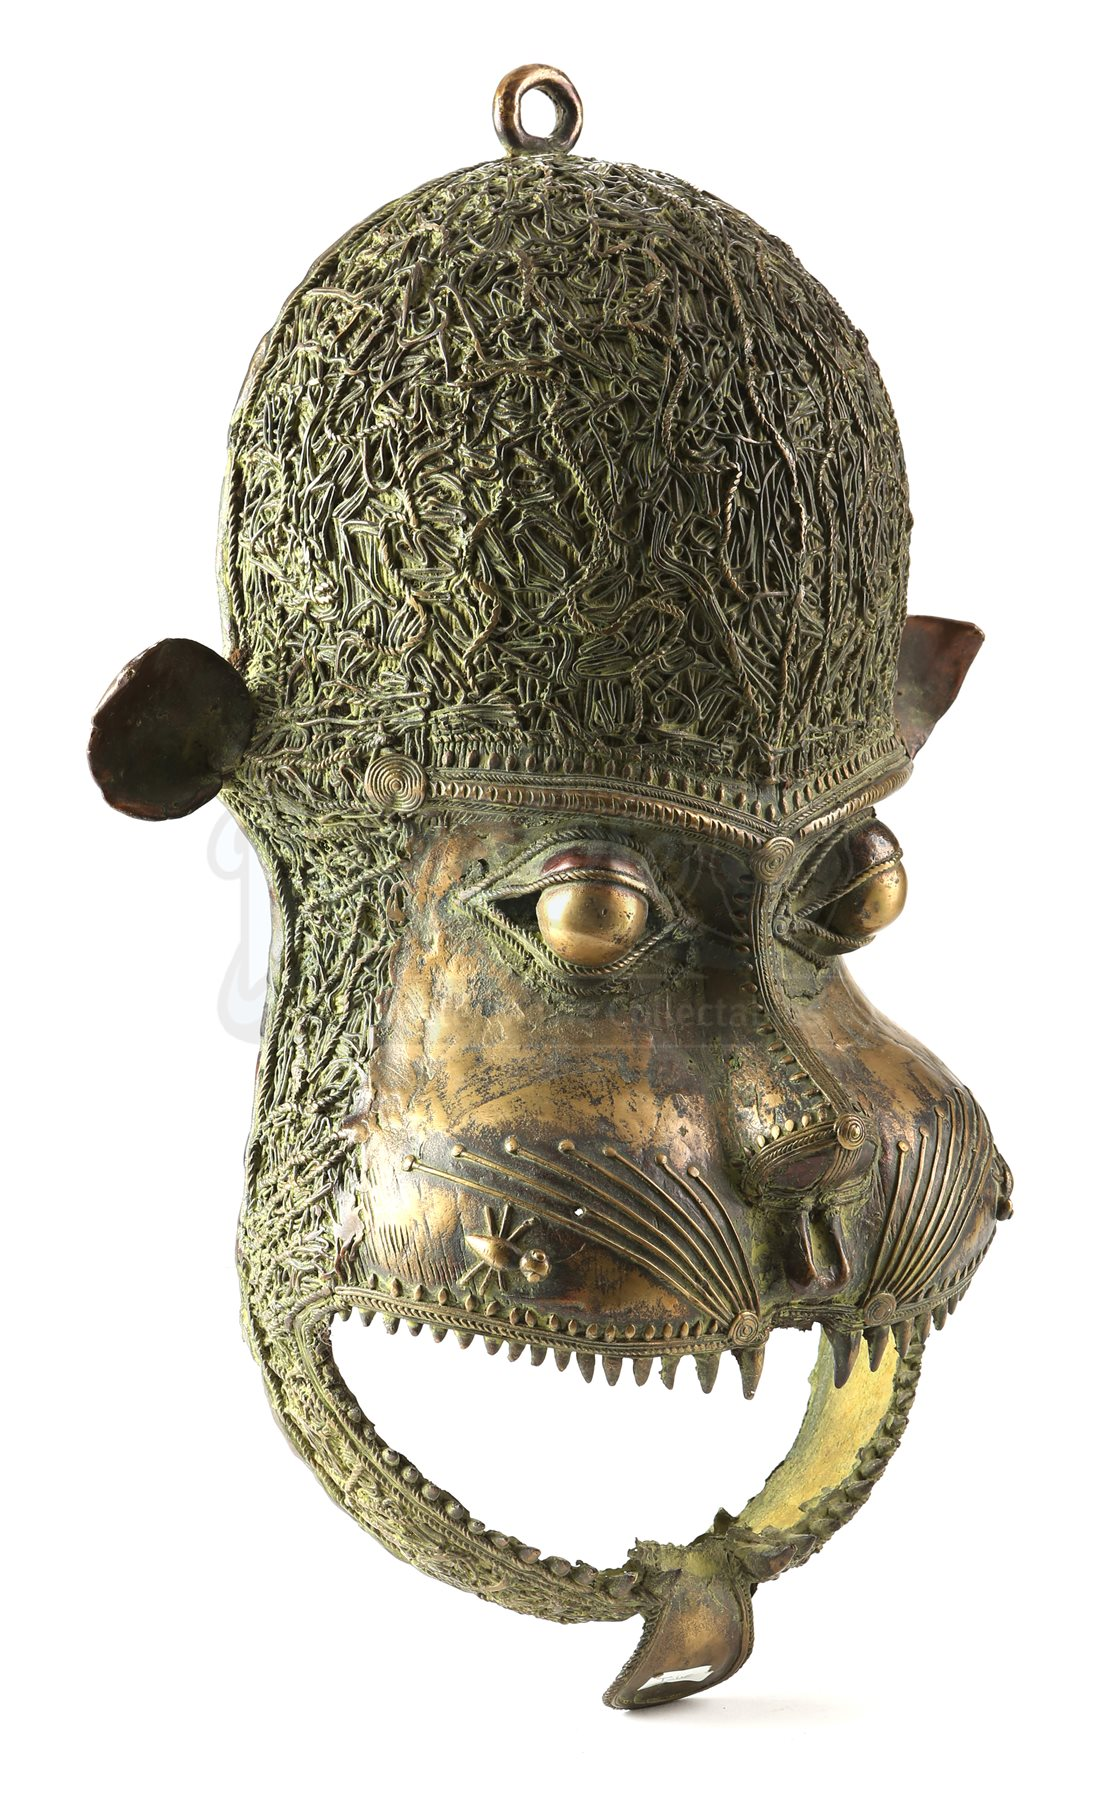 Cullen house brass monkey mask current price 550 for Twilight house price